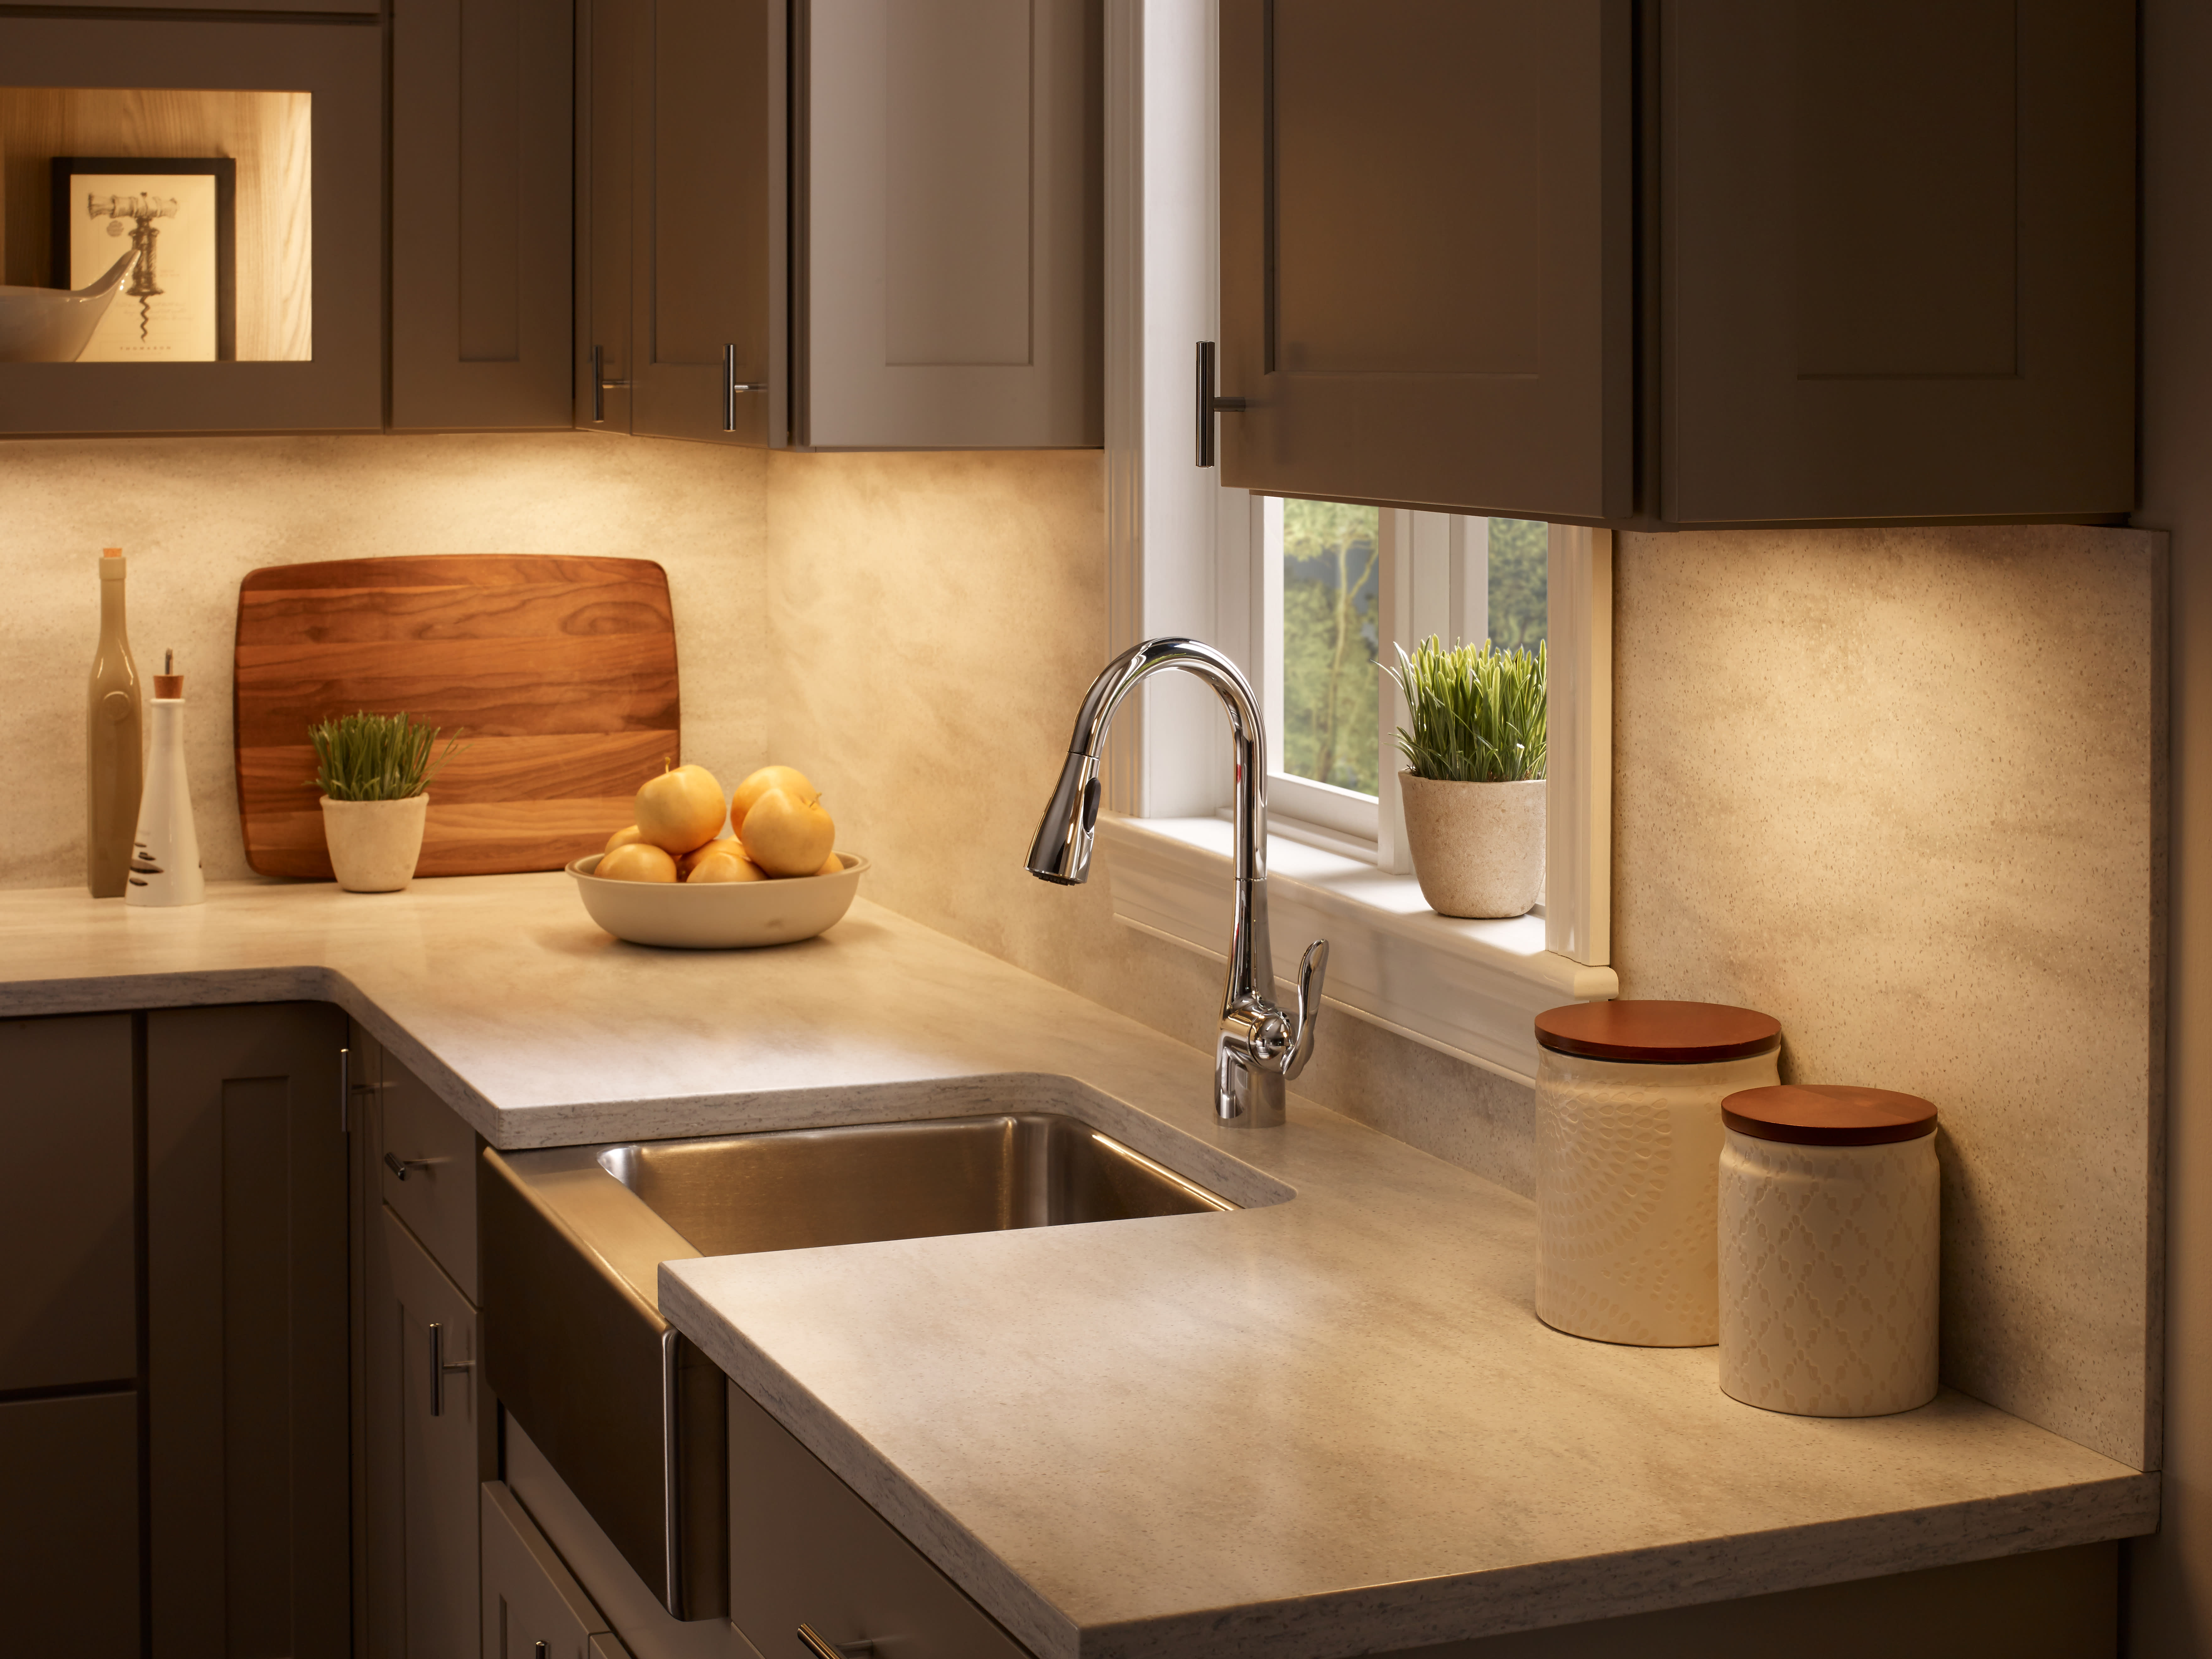 Under-Cabinet Lighting: Why Your Kitchen Deserves It